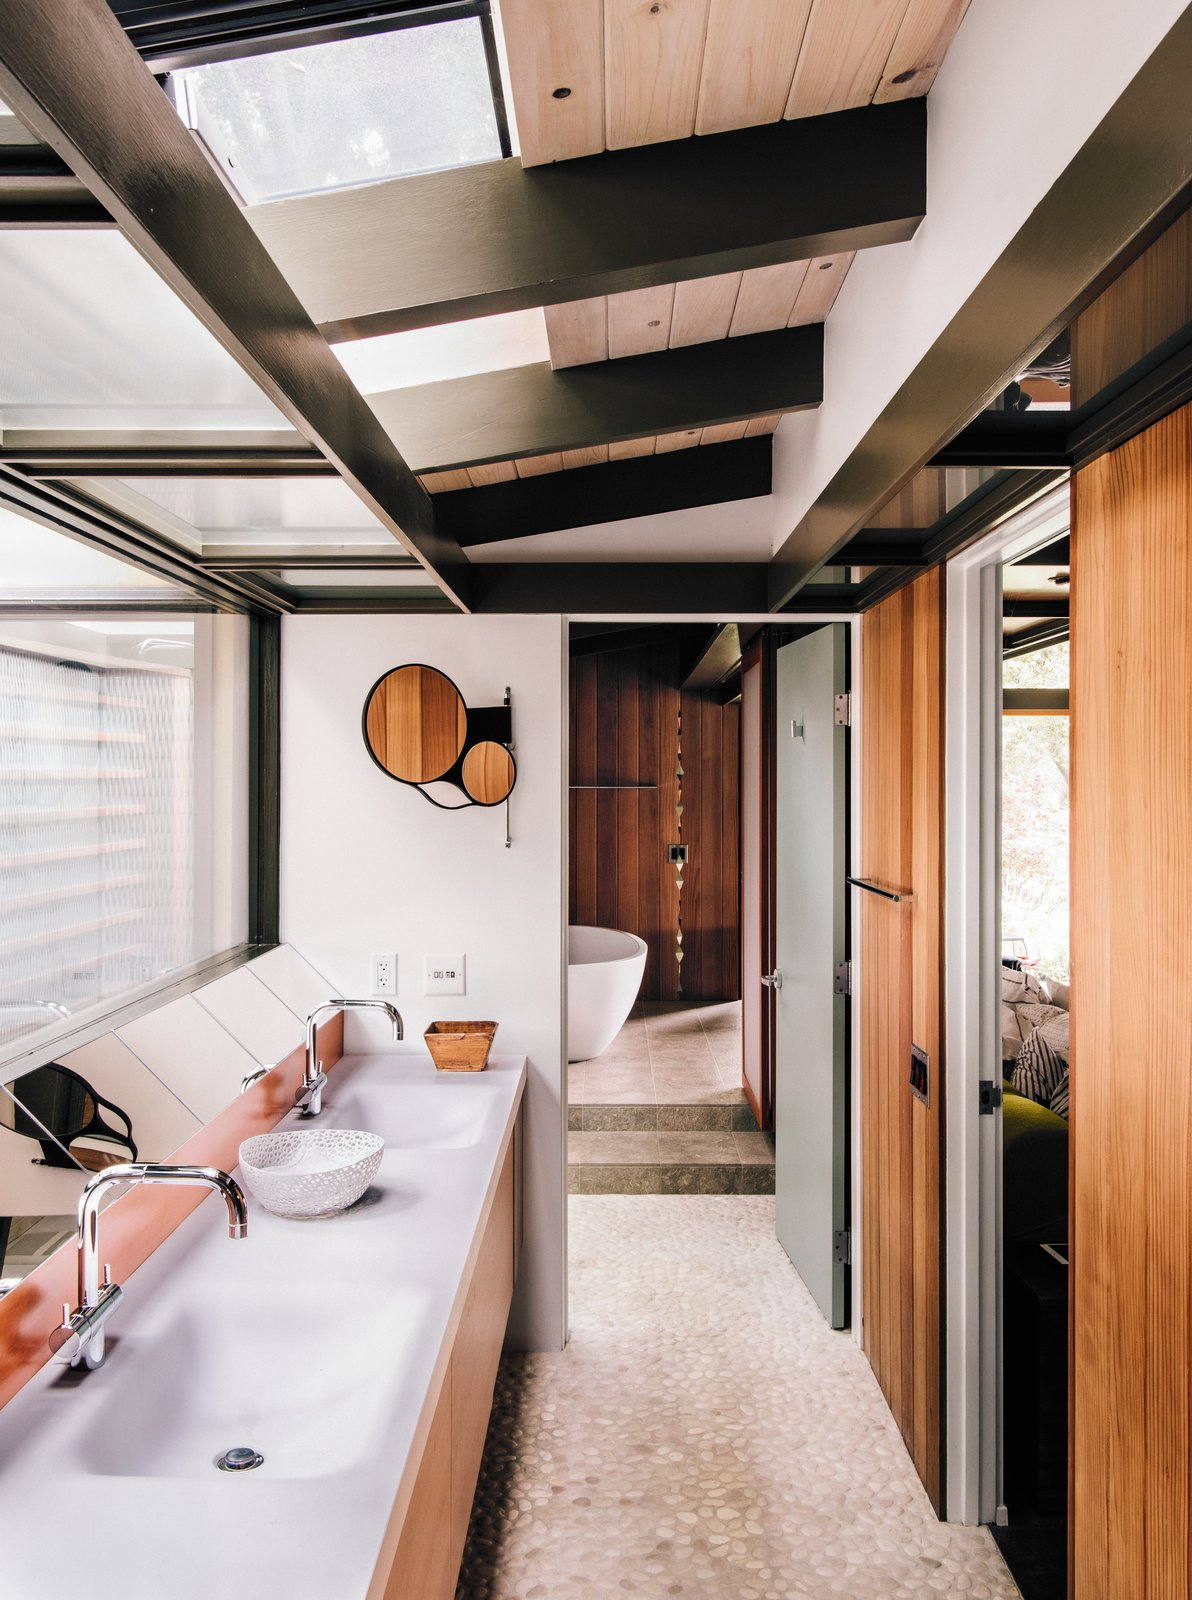 Bath Room and Freestanding Tub Fung + Blatt designed the master bathroom vanity, which features Agape washbasins and fixtures and an angled mirror that reflects the oak trees seen through the skylights.  Photo 5 of 14 in Creative Revival of a Modernist Gem